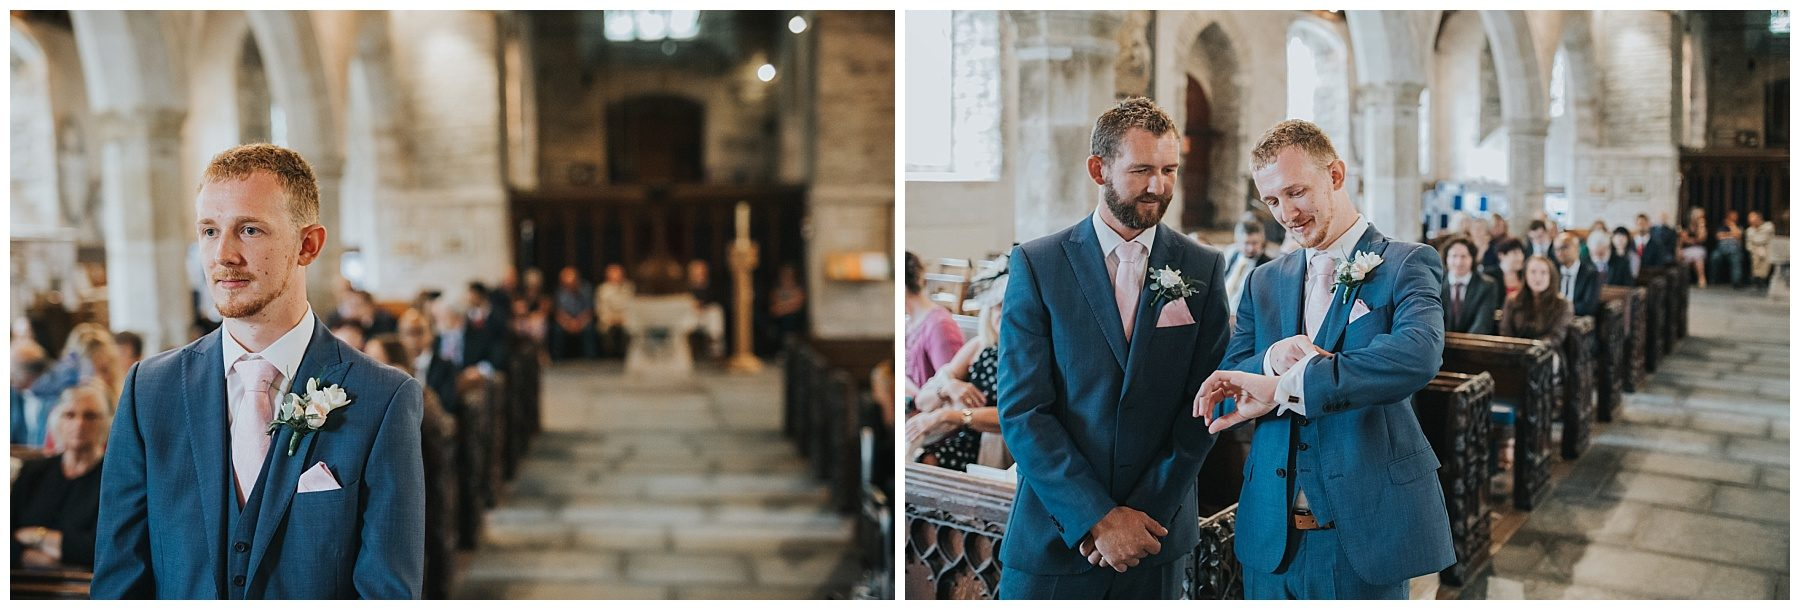 Cornwall wedding photography groom stood at alter waiting for bride